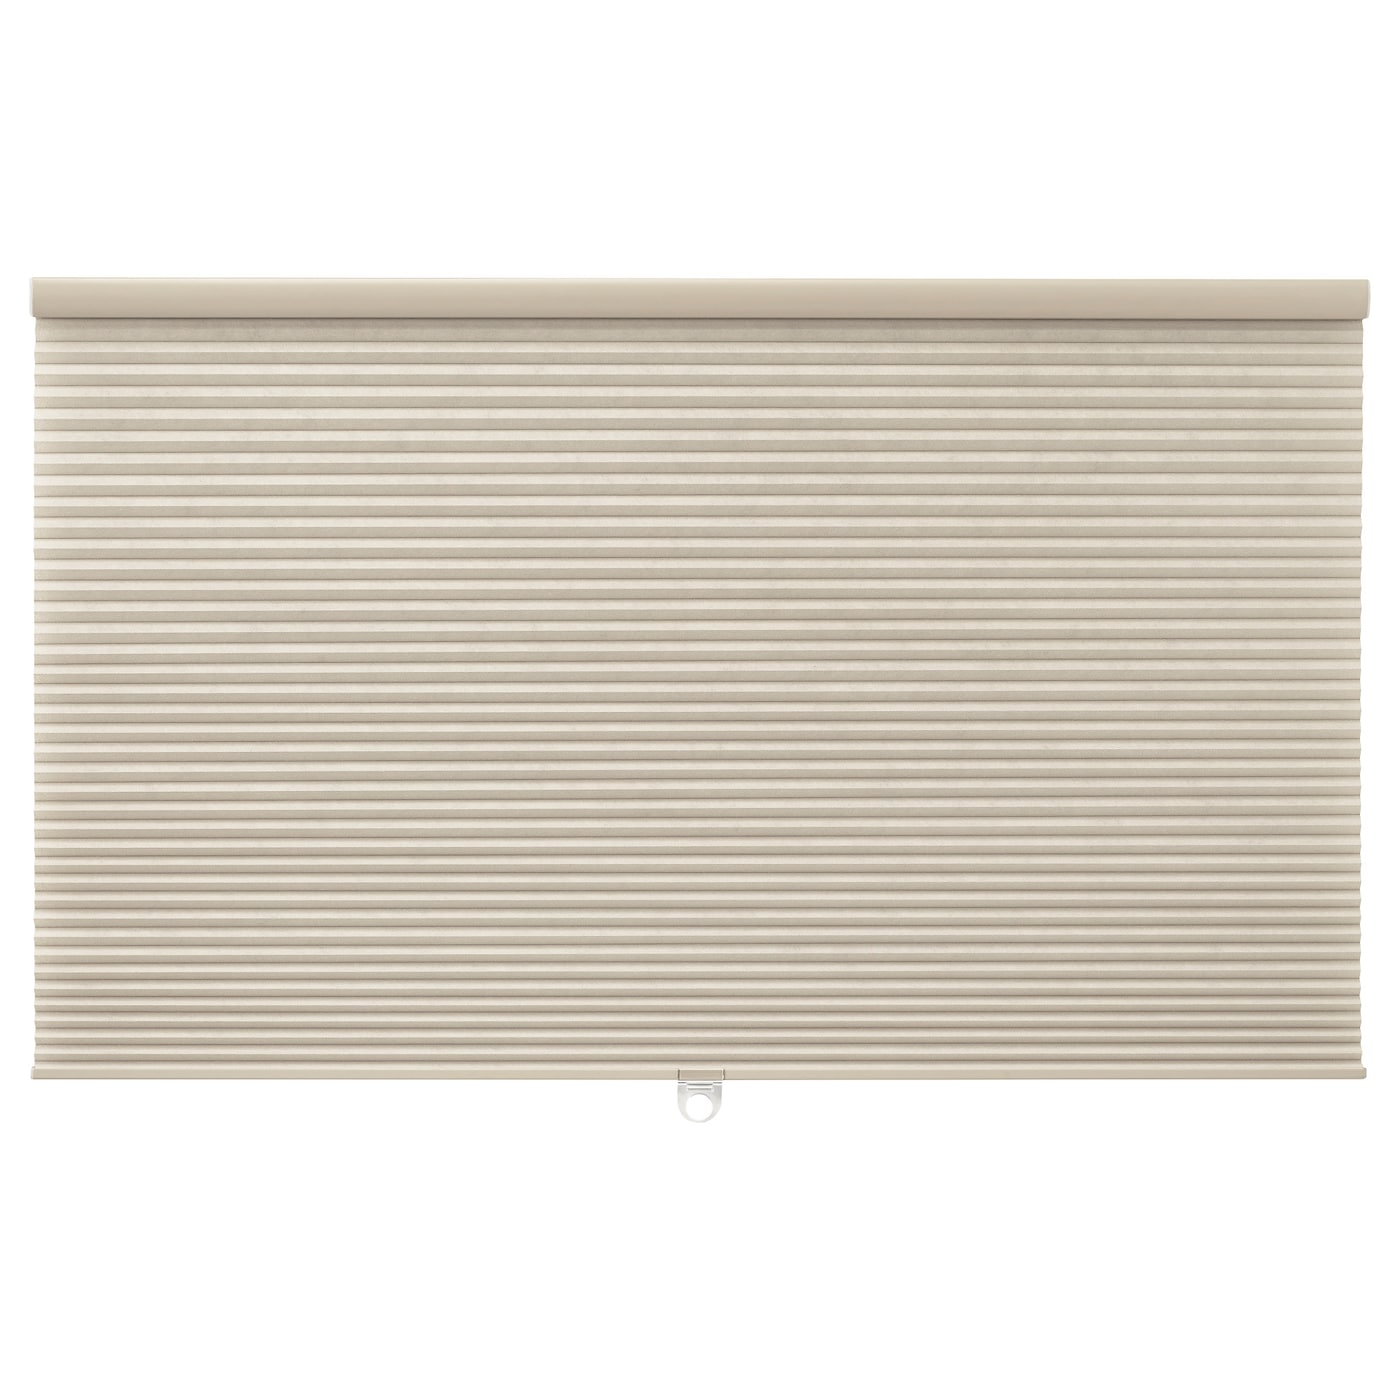 Hoppvals cellular blind beige 100x155 cm ikea for Estores bambu ikea